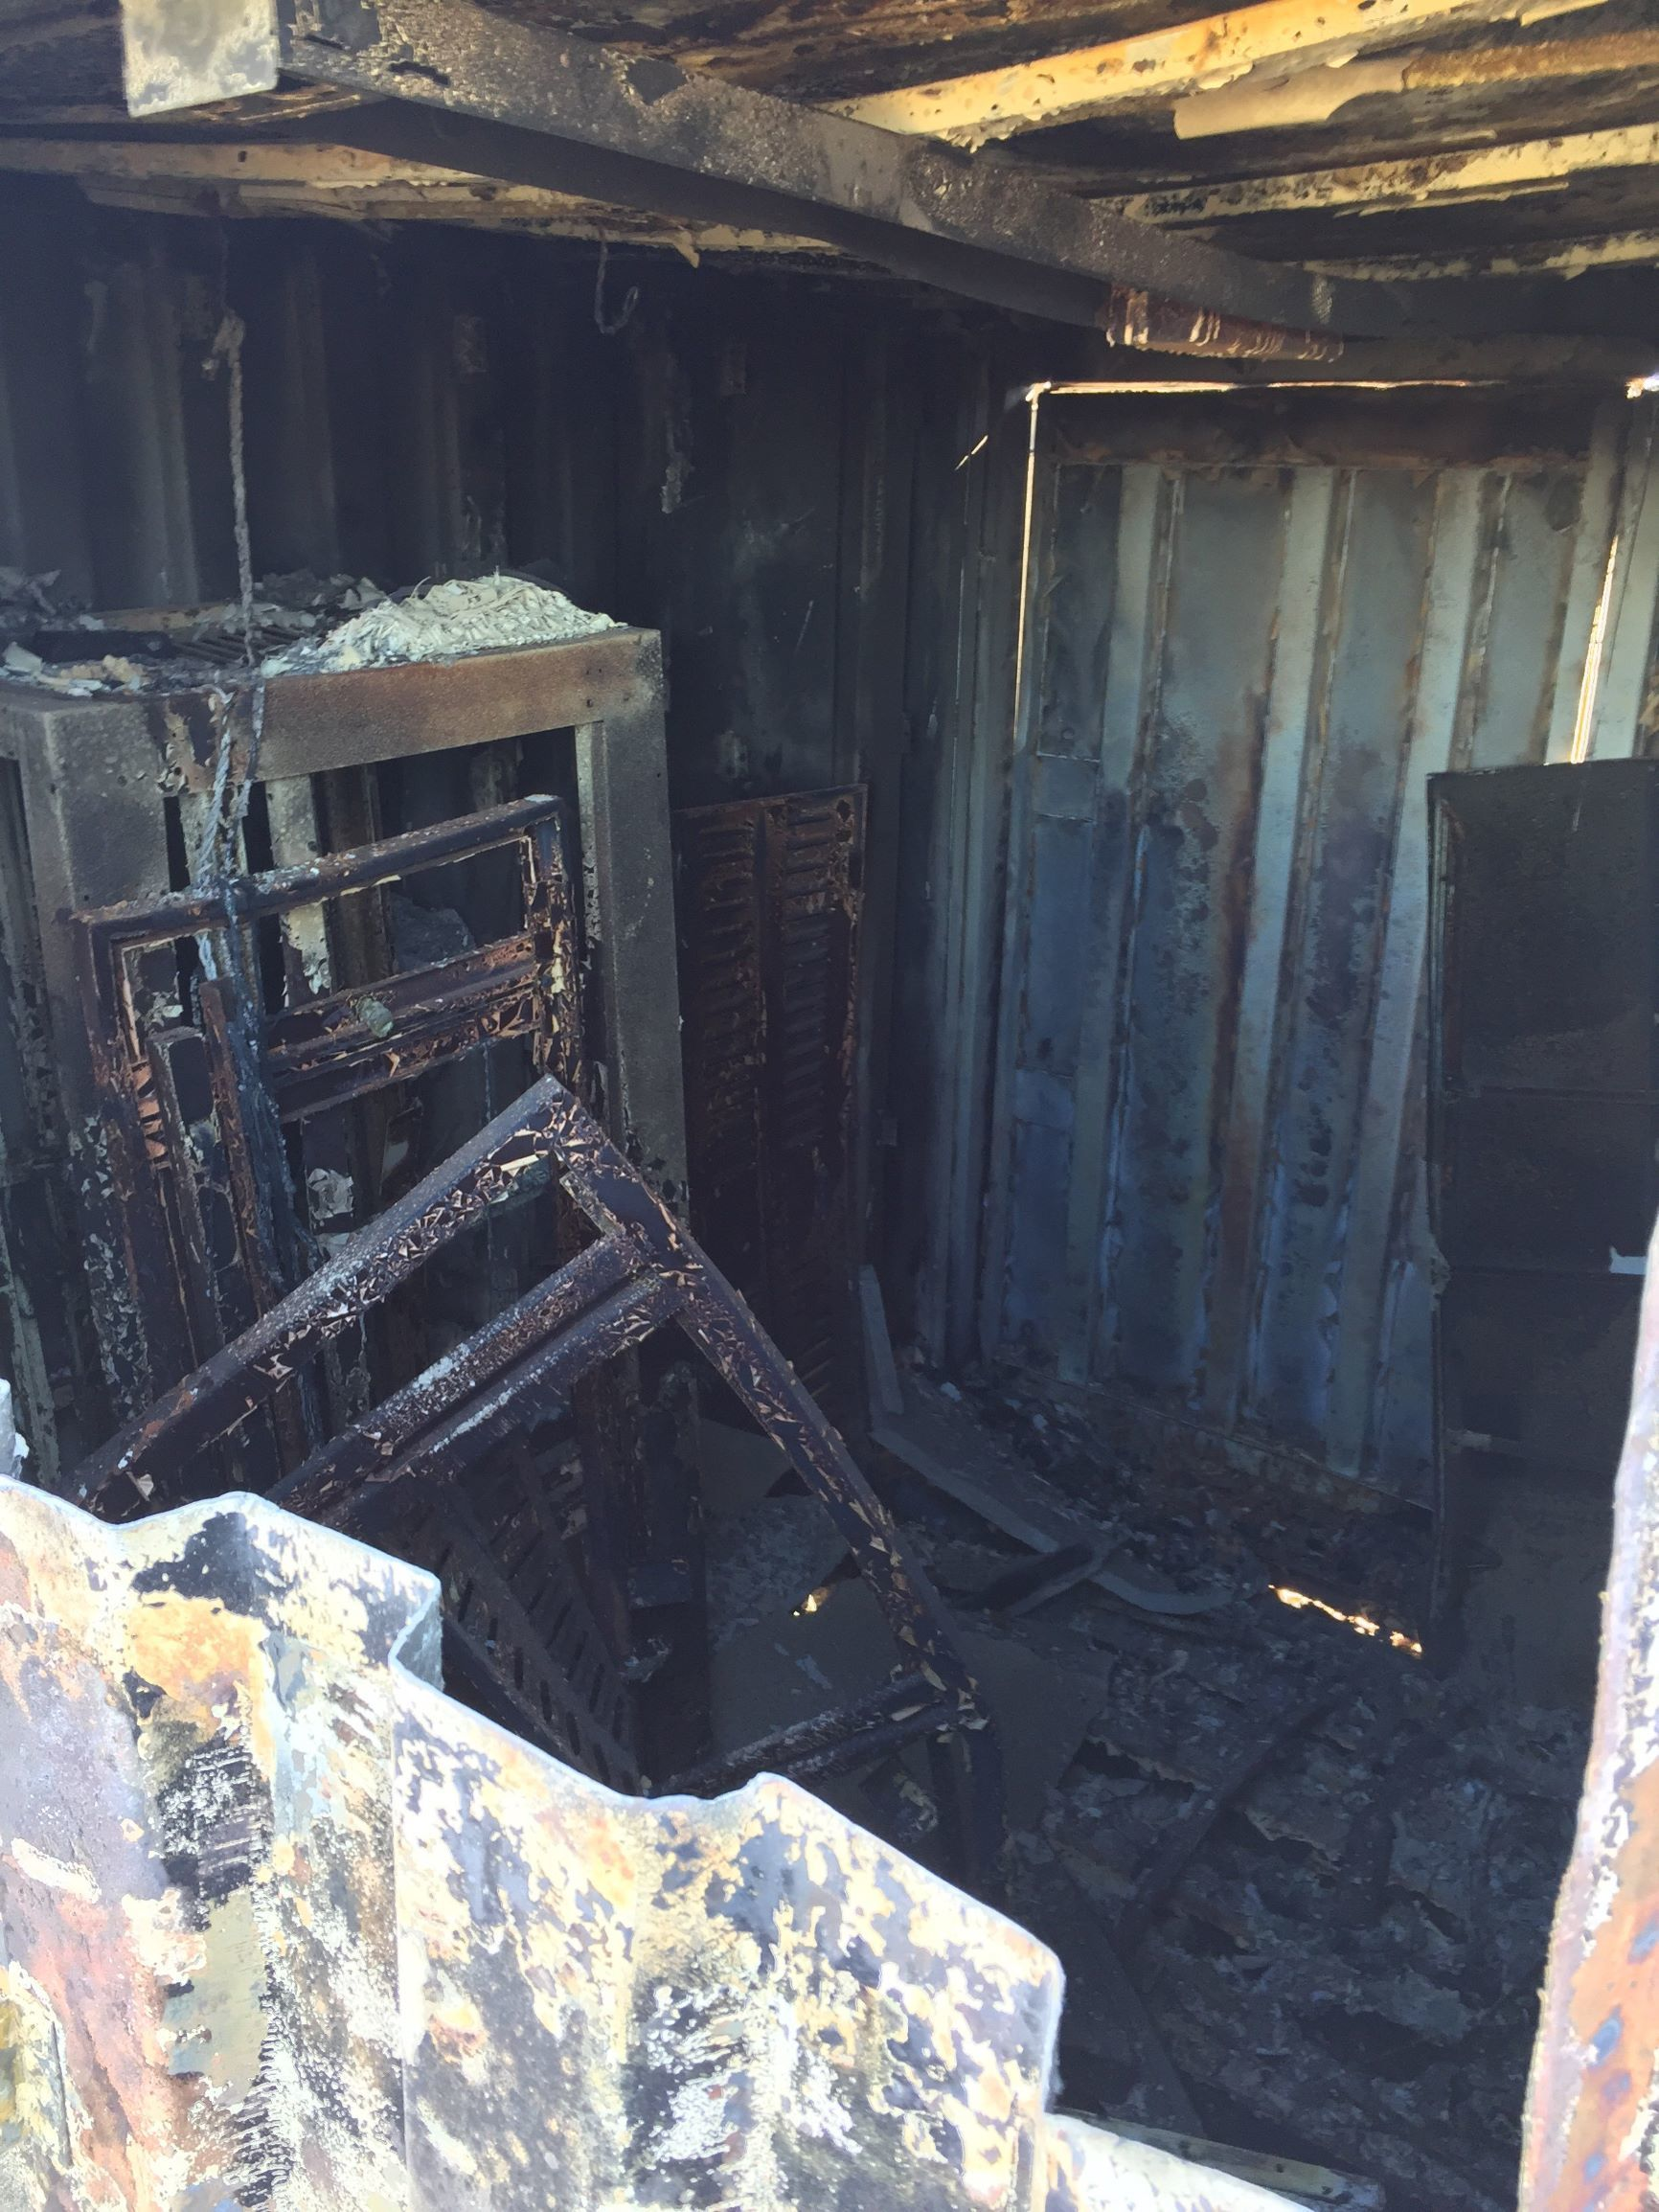 inside_91.1_transmitter_building_after_the_fire_11-2019_L.jpg - 508.21 kB